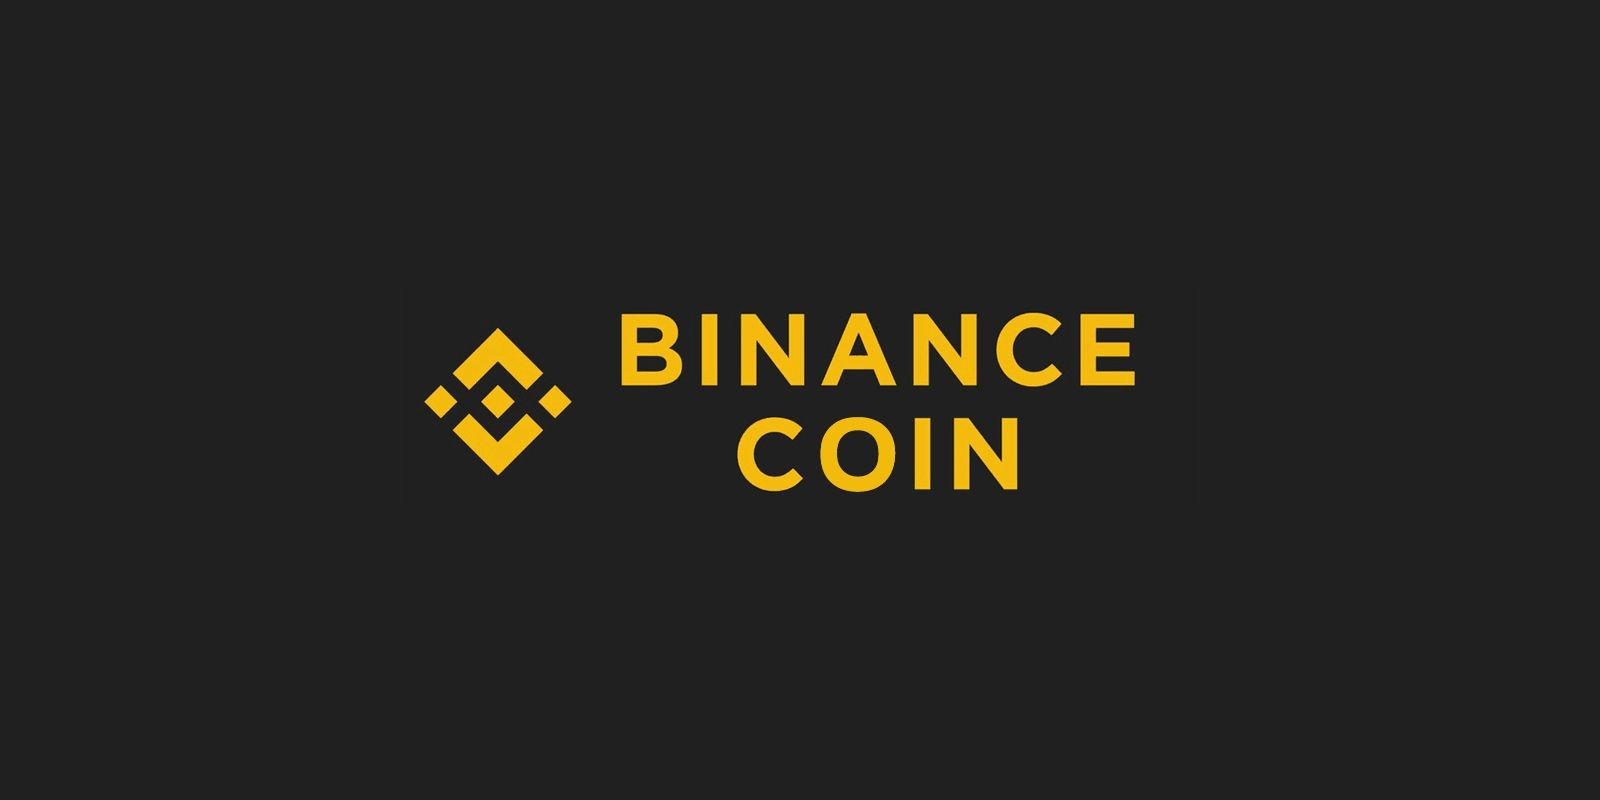 What Is Binance Coin Bnb A Crypto Coin Study Via Our Sister Site Blocksdecoded Crypto Cryptocurrency Bitcoin Ethereu Crypto Coin Coins What Are Waves